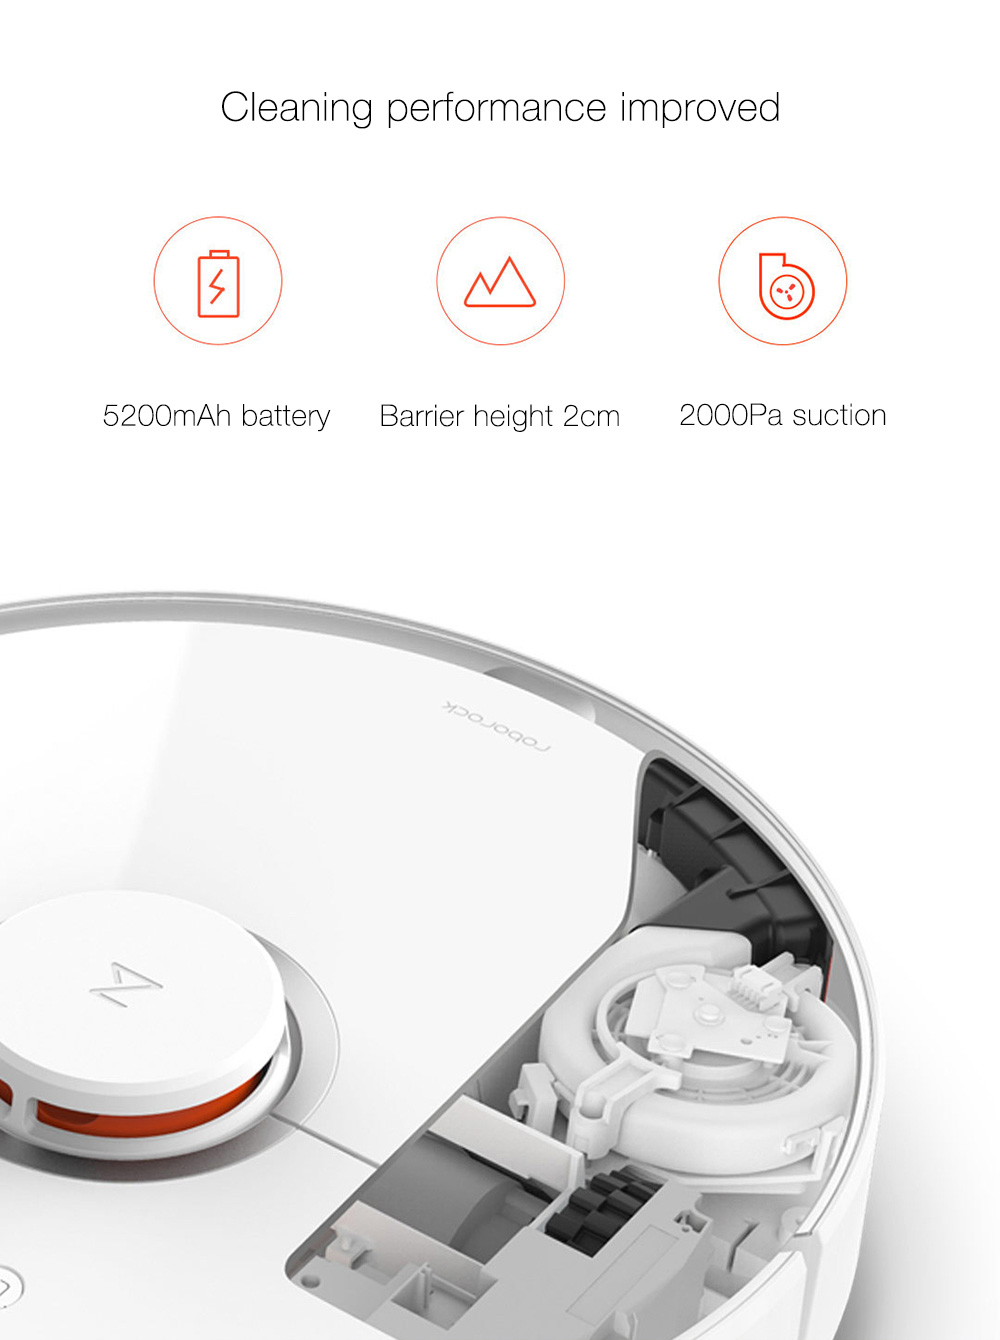 INTERNATIONAL VERSION XIAOMI MIJIA ROBOROCK VACUUM CLEANER 2 AUTOMATIC AREA CLEANING 2000PA SUCTION 2 IN 1 SWEEPING MOPPING FUNCTION 256393 11